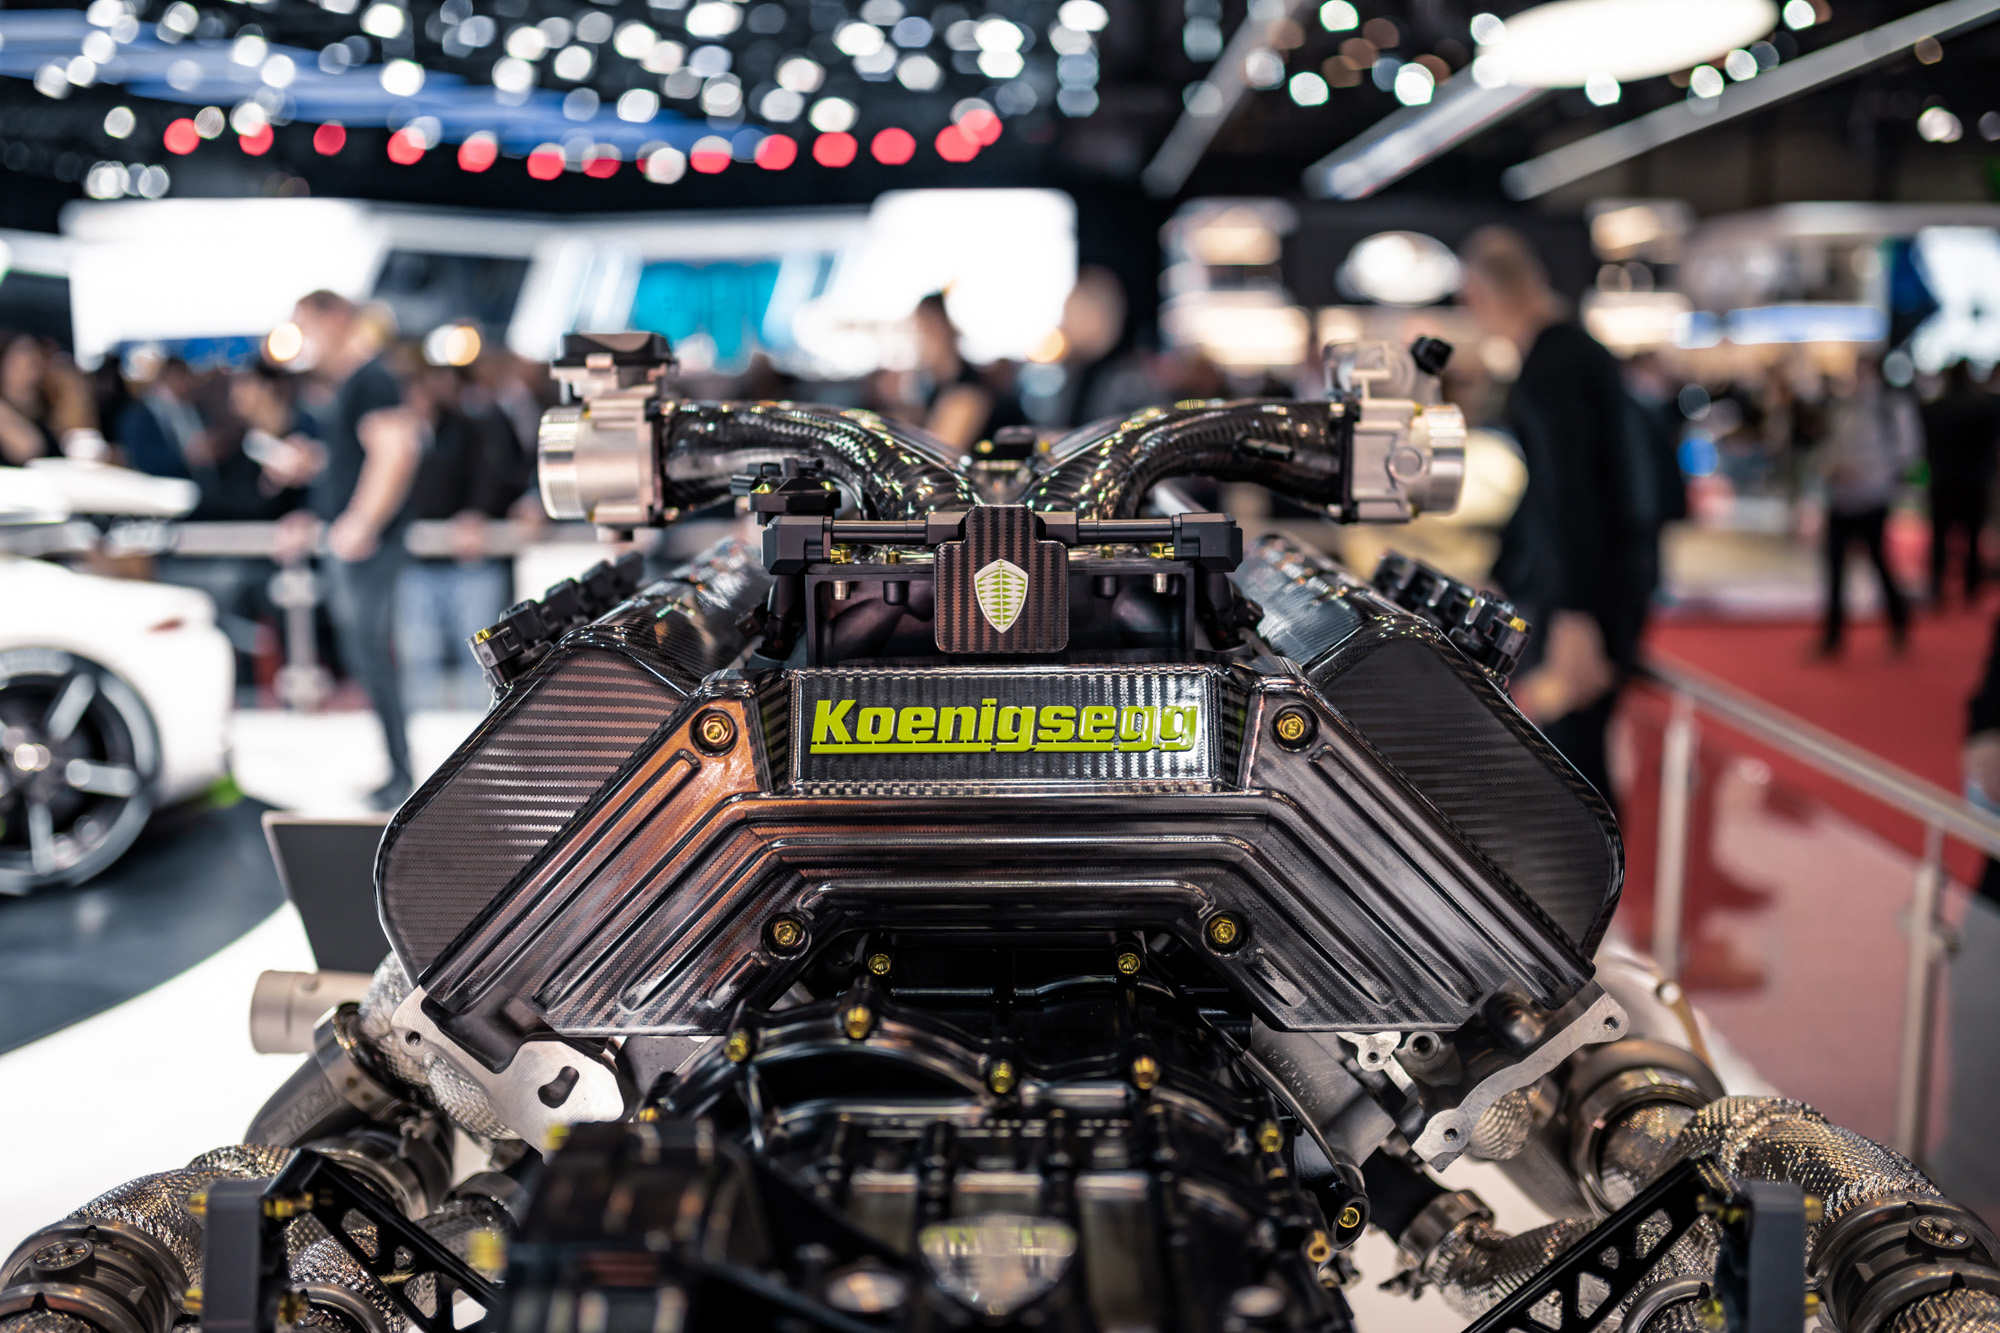 Koenigsegg Jesko - 2019 - V8 5.0L - engine / moteur - Gims Swiss - photo by Keno Zache